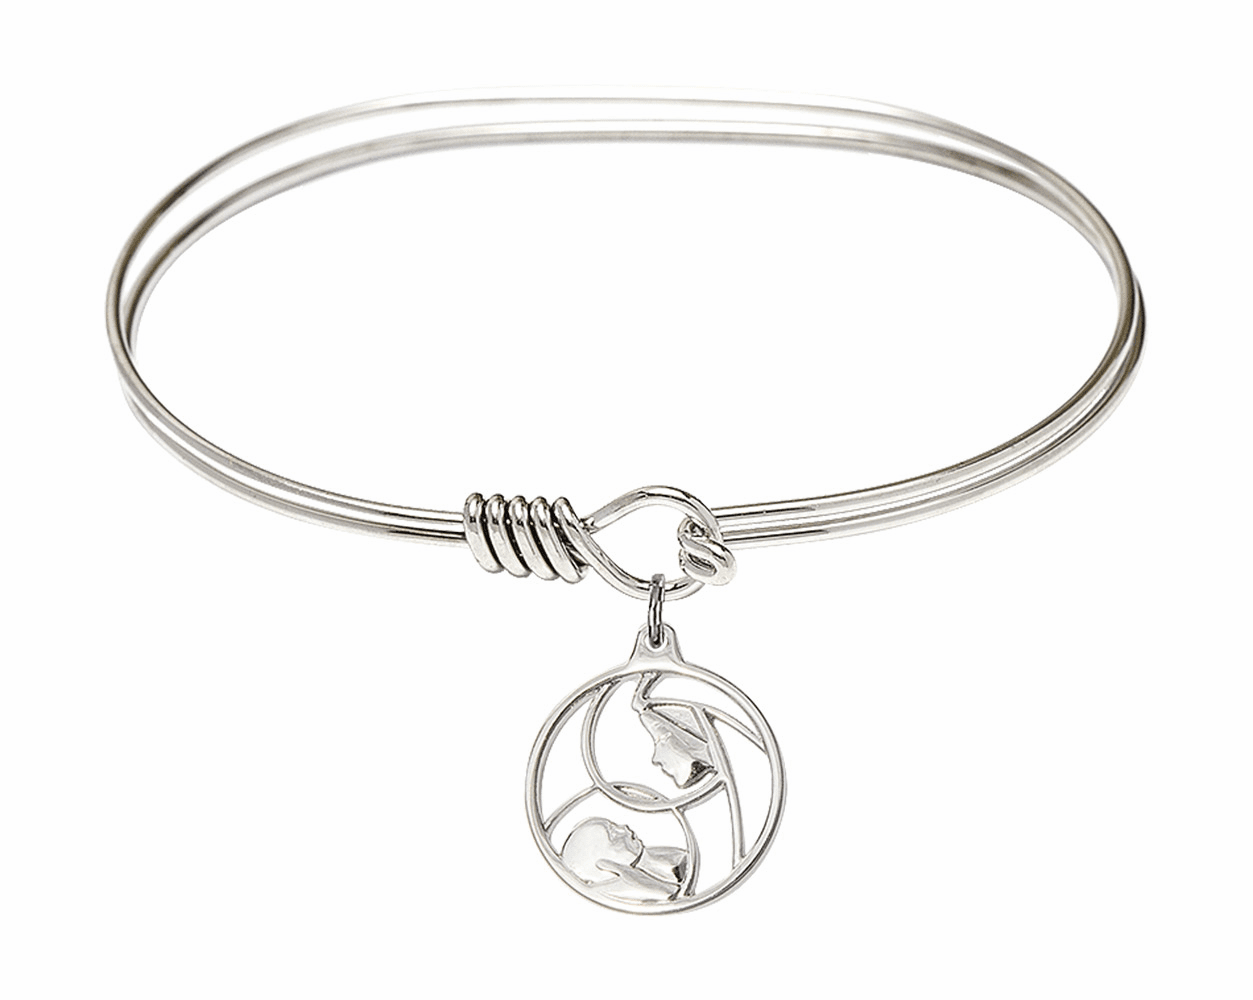 Round Eye Hook Bangle Bracelet w/Madonna and Child Sterling Silver Charm by Bliss Mfg